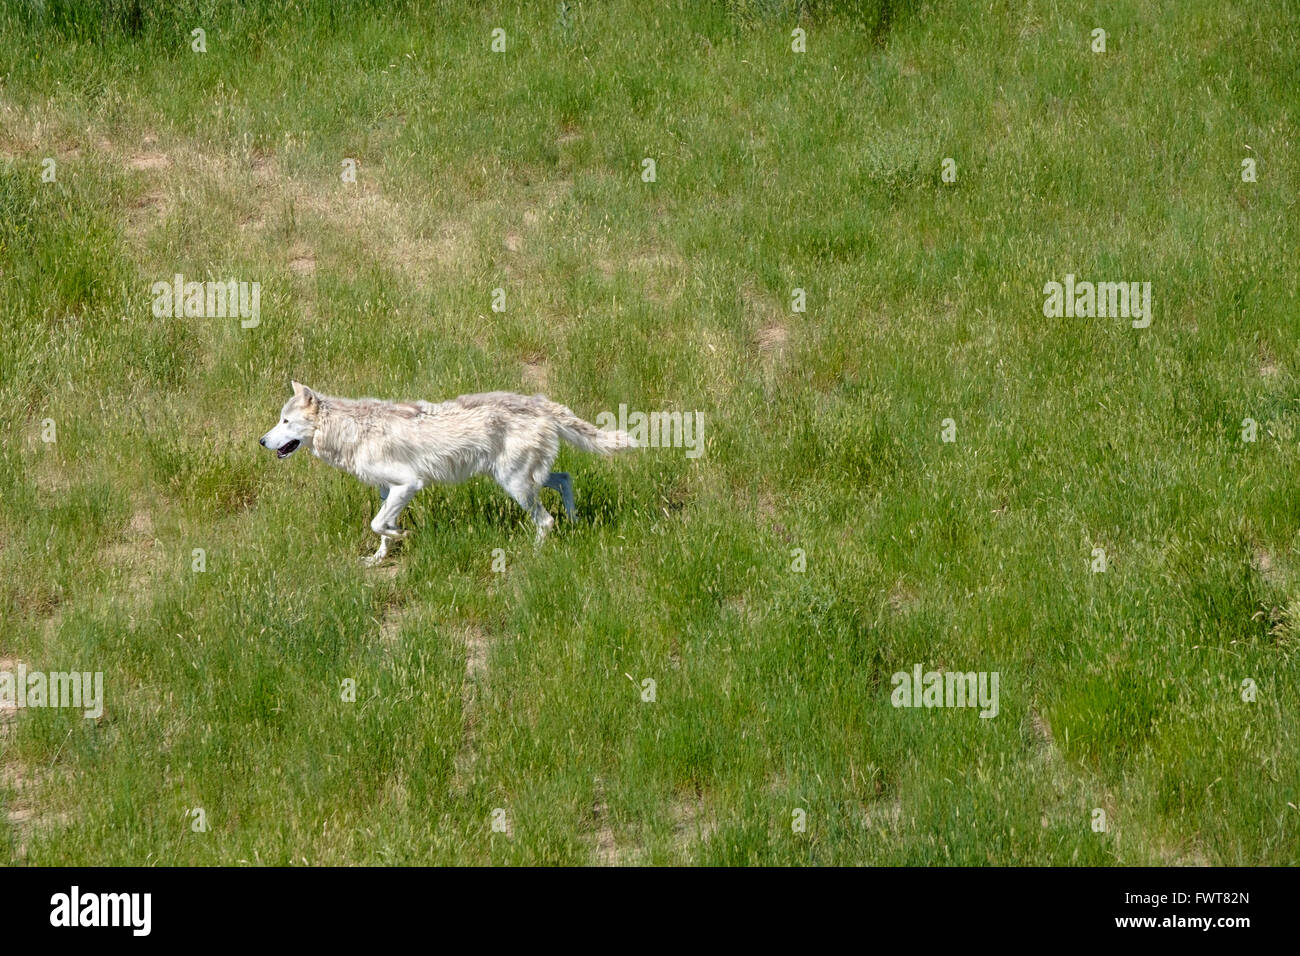 A grey wolf roams in his enclosure at the Wild Animal Sanctuary in Keenesburg, Colorado. Stock Photo